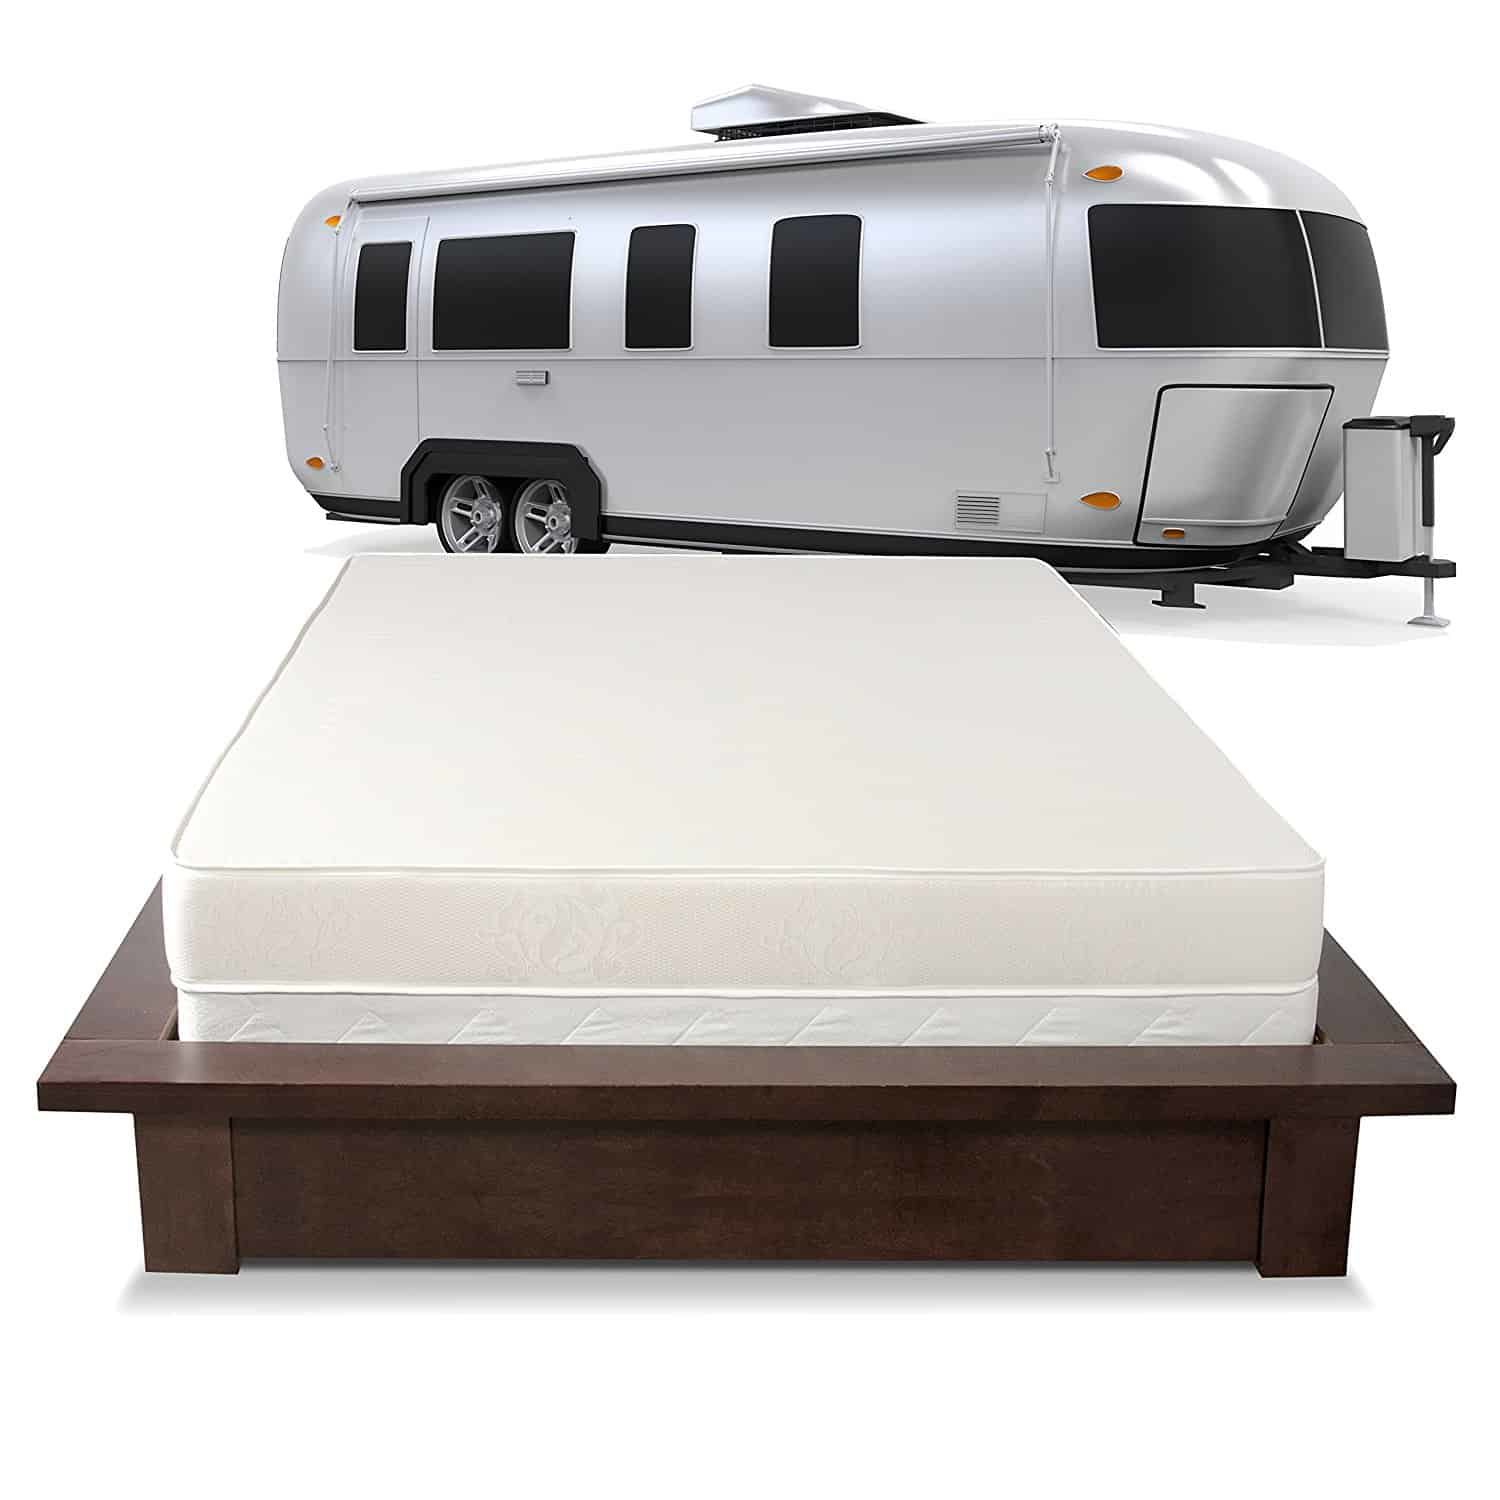 Twin Size Travel Mattress